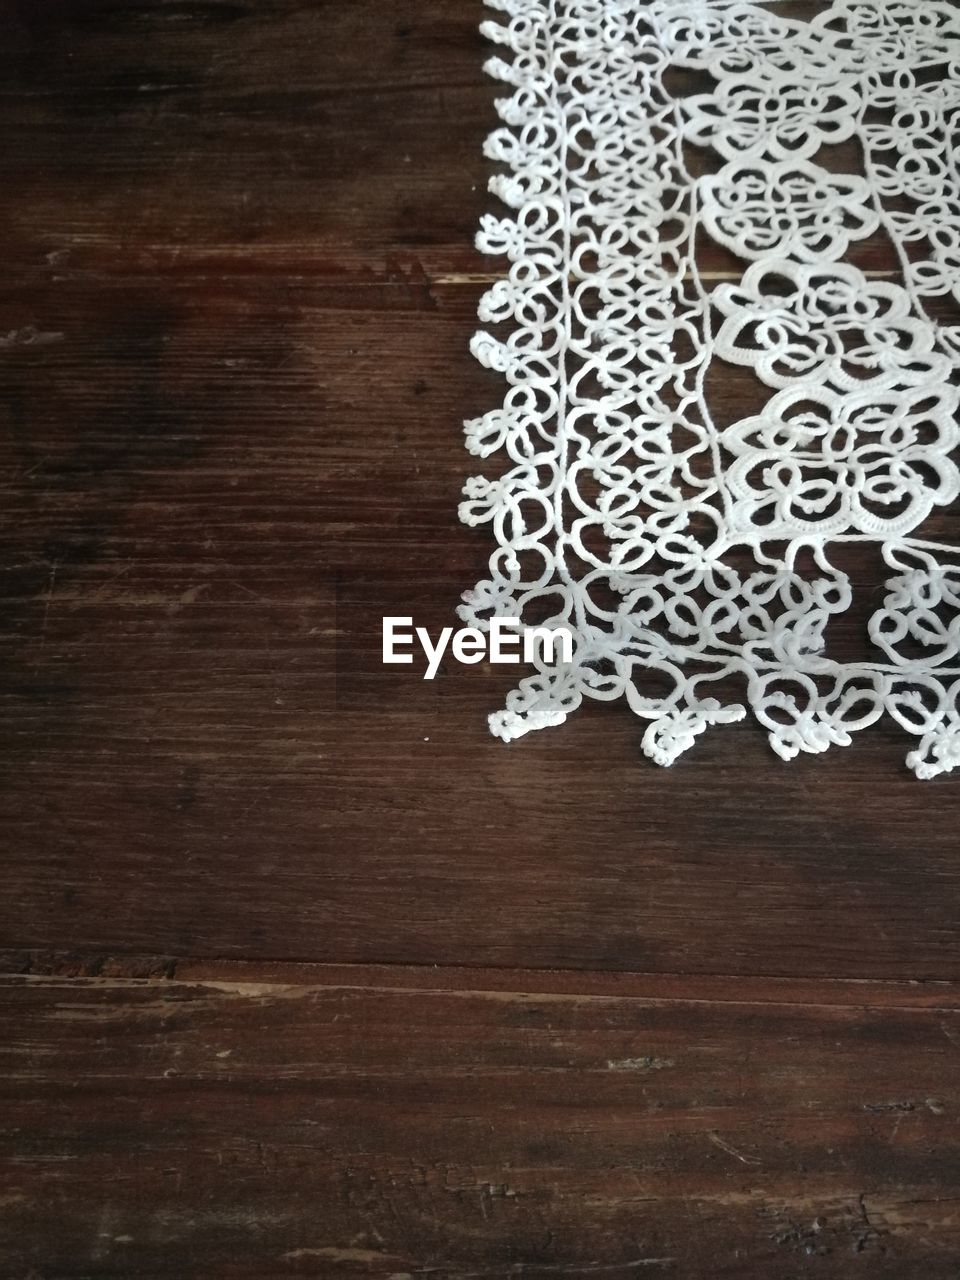 indoors, wood - material, table, pattern, no people, still life, directly above, brown, close-up, creativity, high angle view, wood, decoration, art and craft, white color, flooring, design, craft, celebration, floral pattern, embroidery